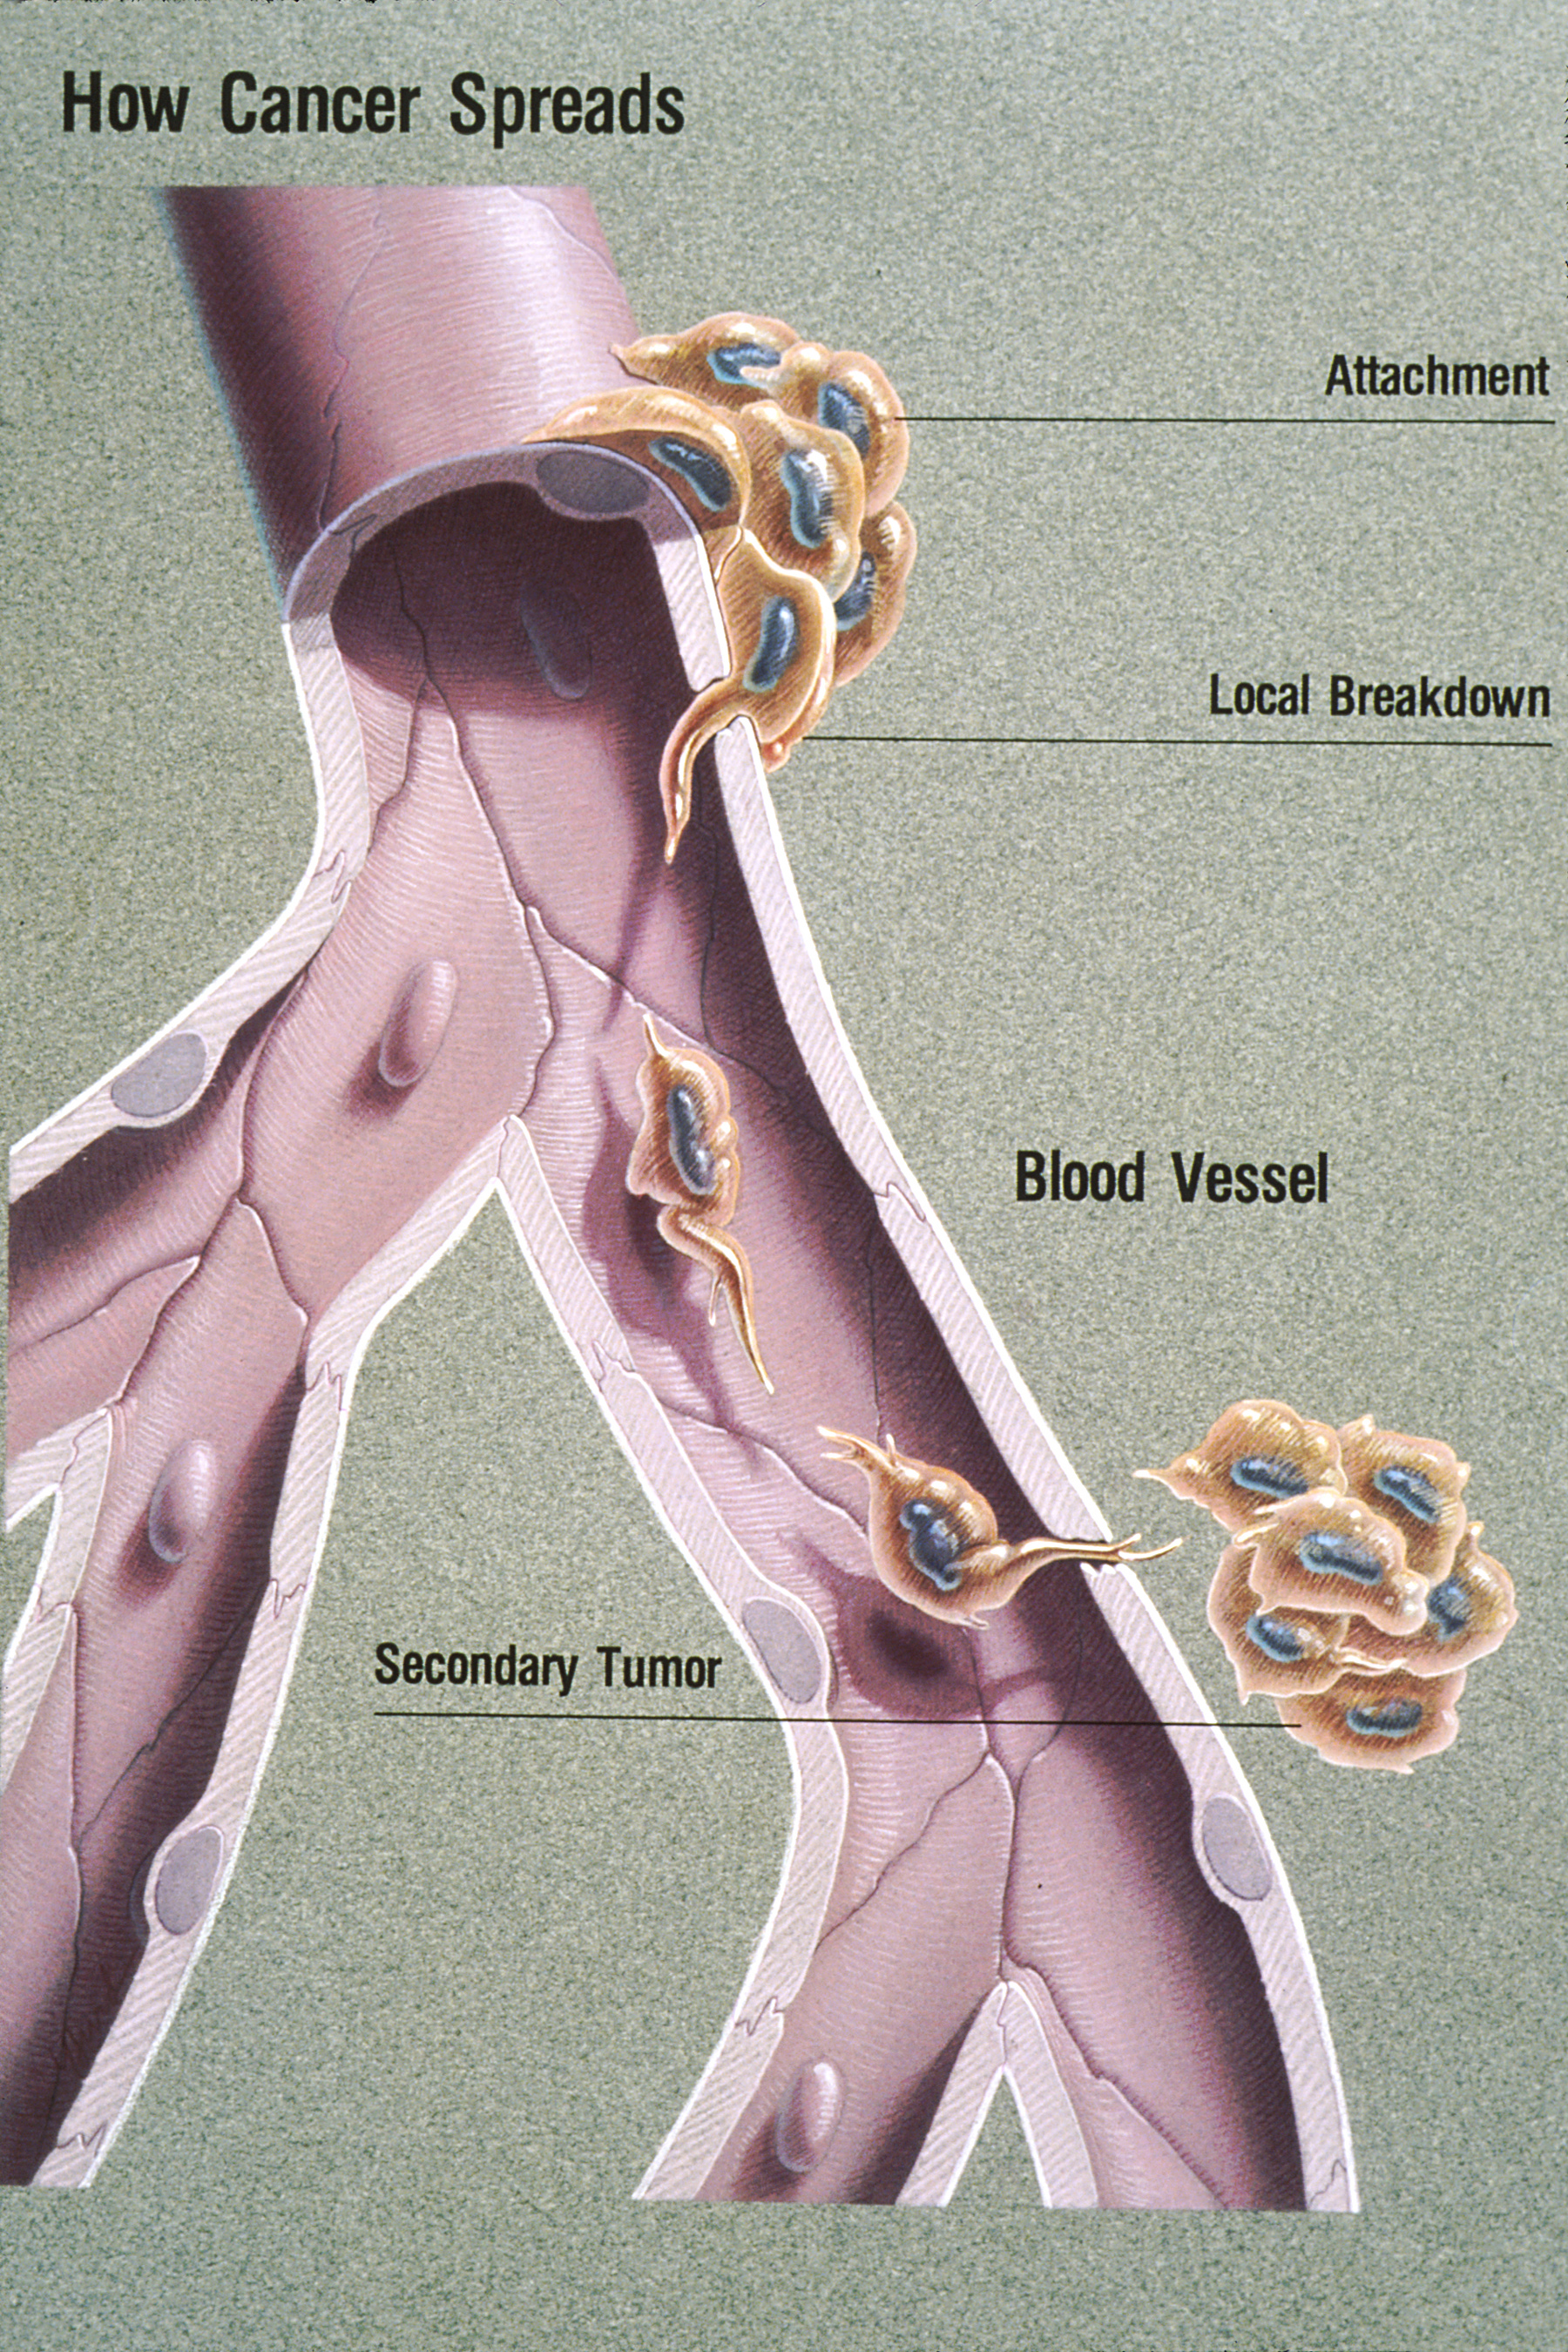 sarcoma cancer meaning